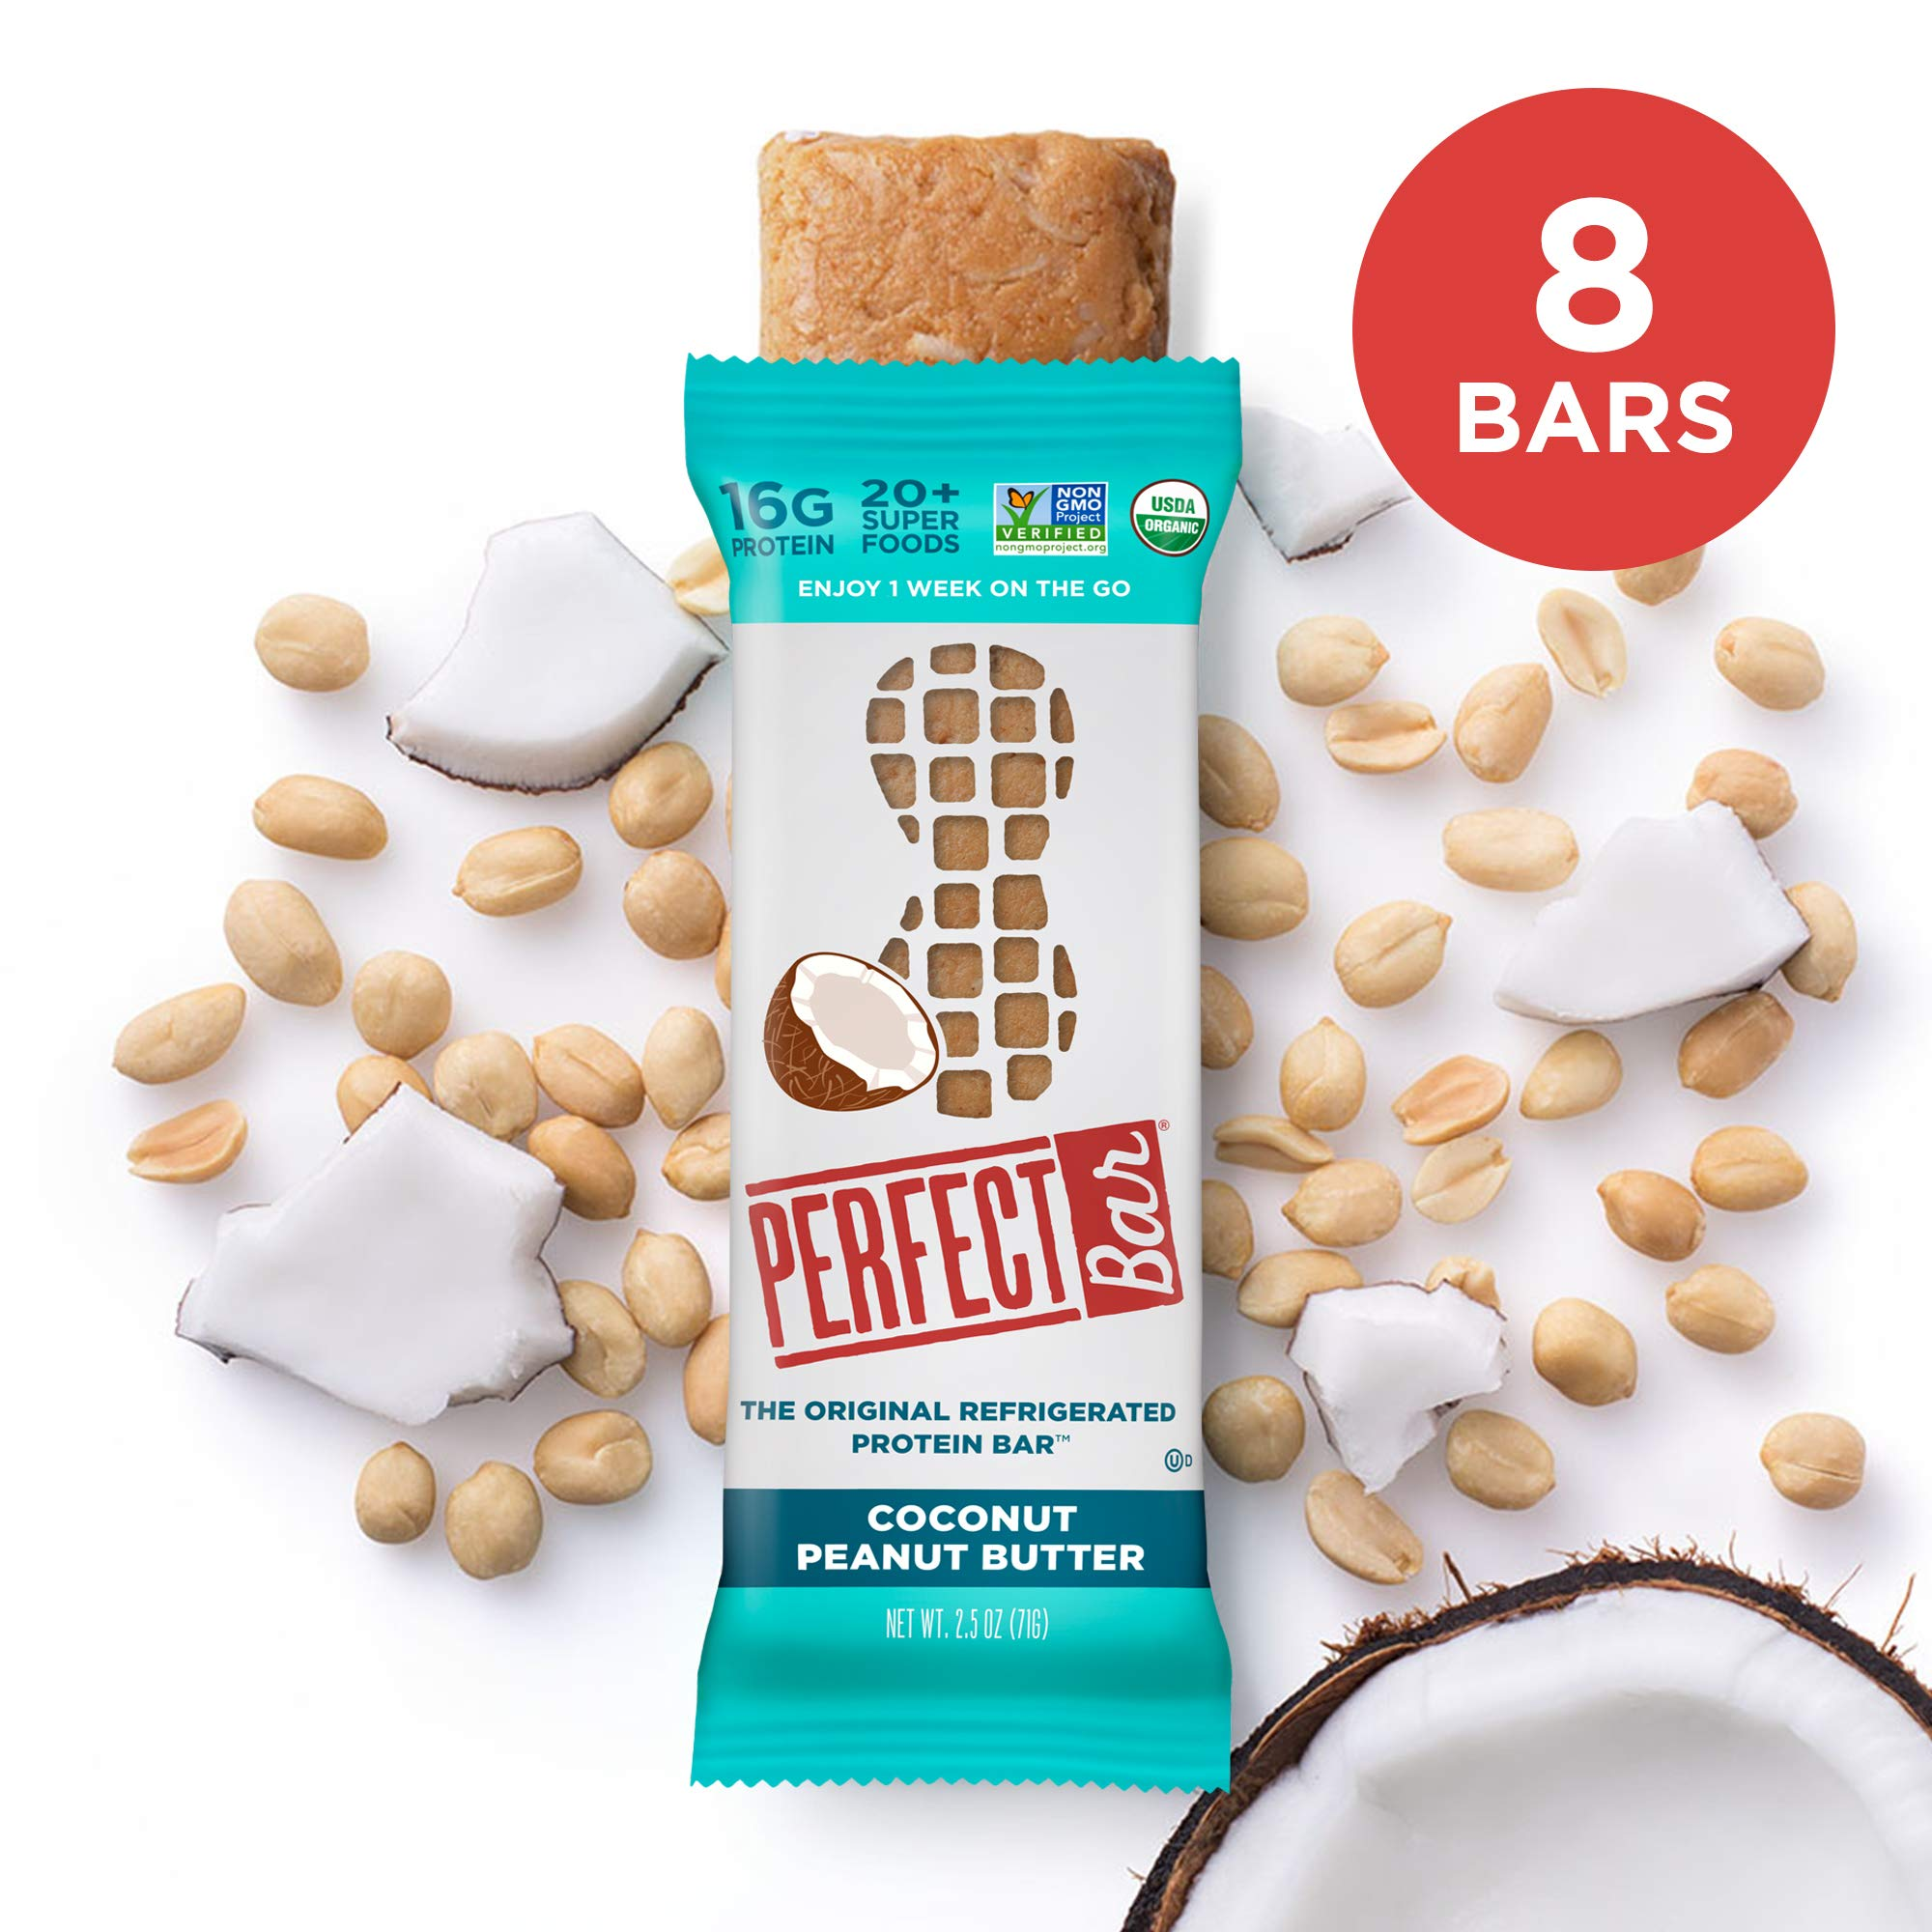 Perfect Bar Original Refrigerated Protein Bar, Coconut Peanut Butter, 2.5 Ounce Bar, 8 Count